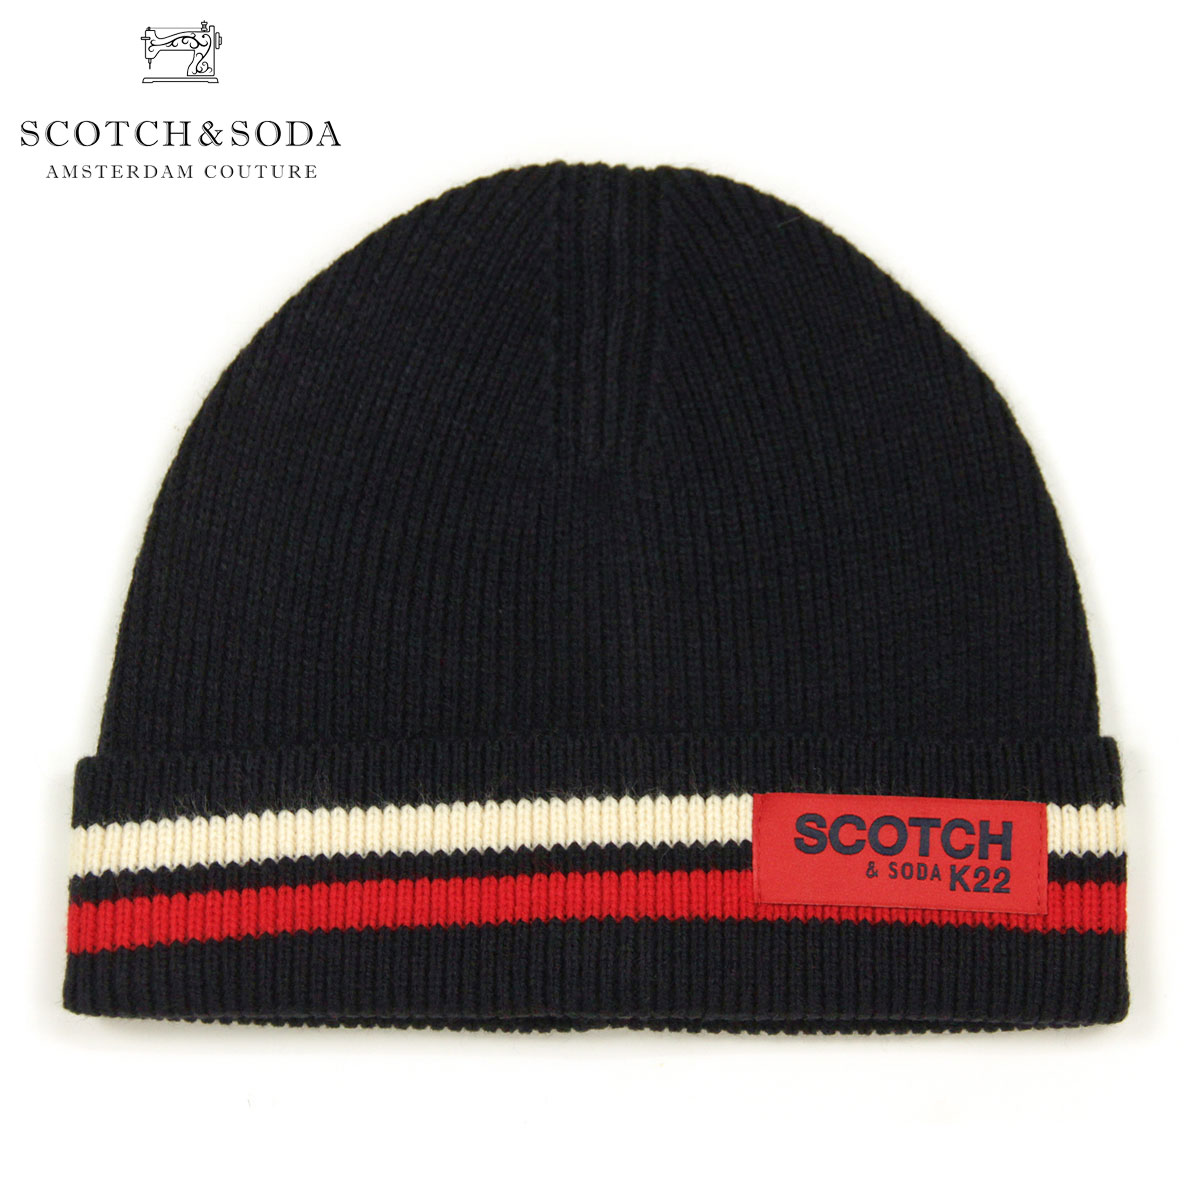 ff3969325 Is going to be received reservation product about November; Scotch Whiskey  and soda cap men's regular store SCOTCH & SODA knit cap hat CLASSIC RIB ...